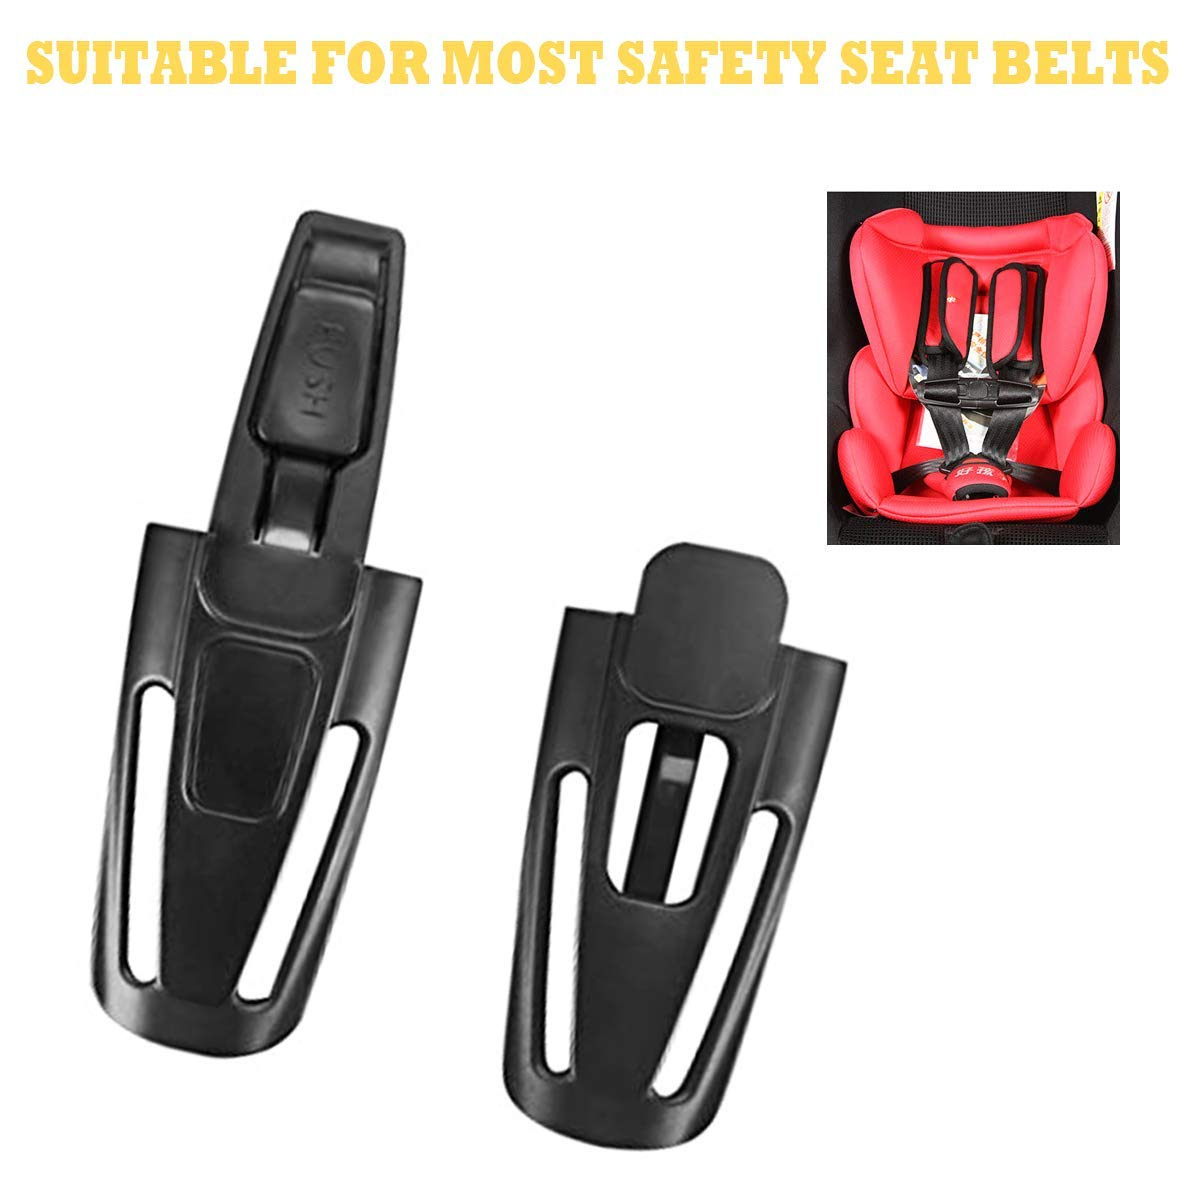 Beautop Baby Seat Portable Dining Chair Seat Belt Safety